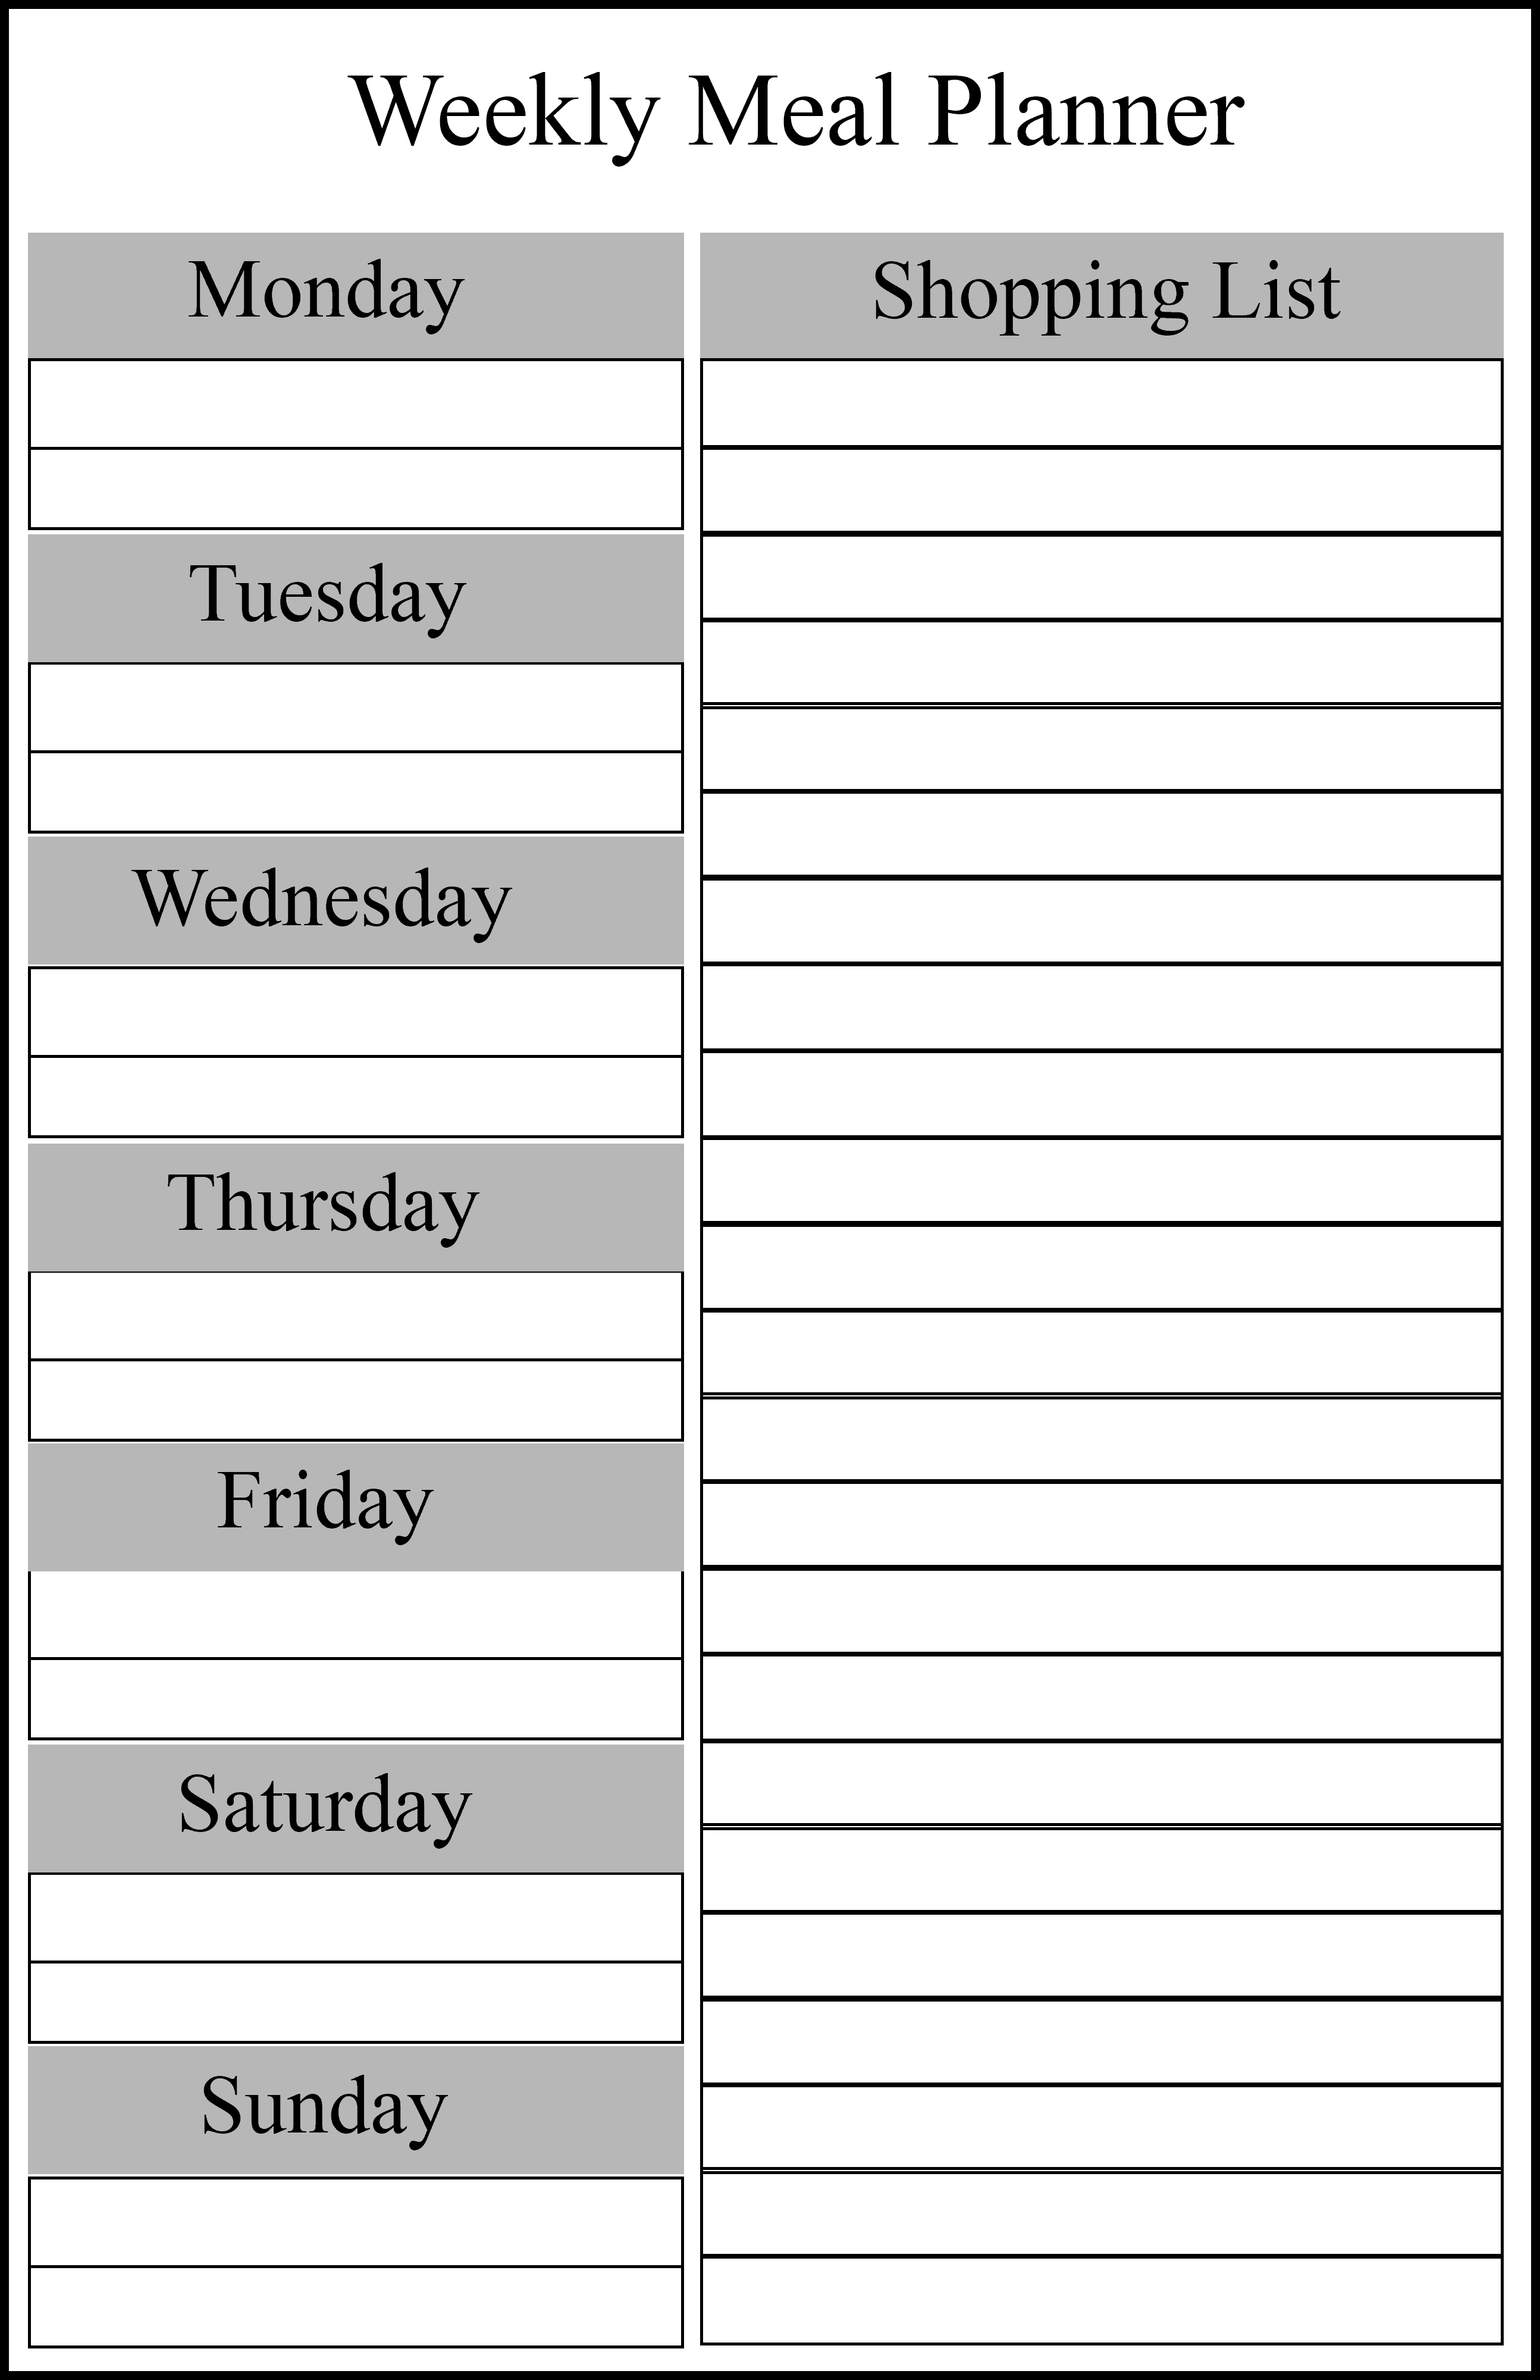 Weekly Meal Planner For Family Templates | How To Wiki